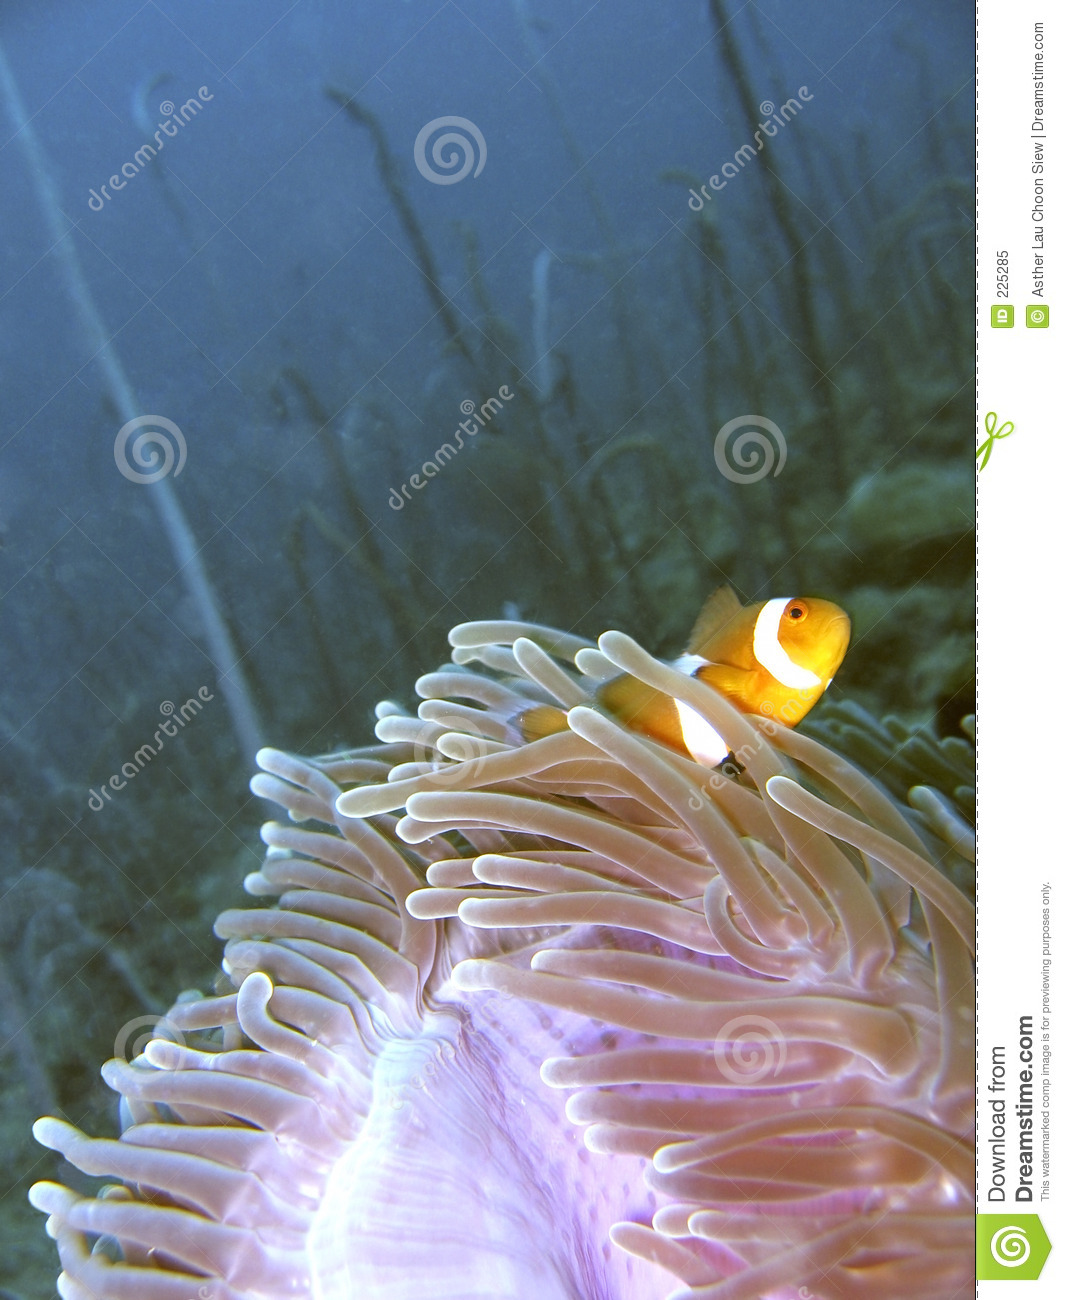 Download Clown fish in anemone stock image. Image of colorful, undersea - 225285